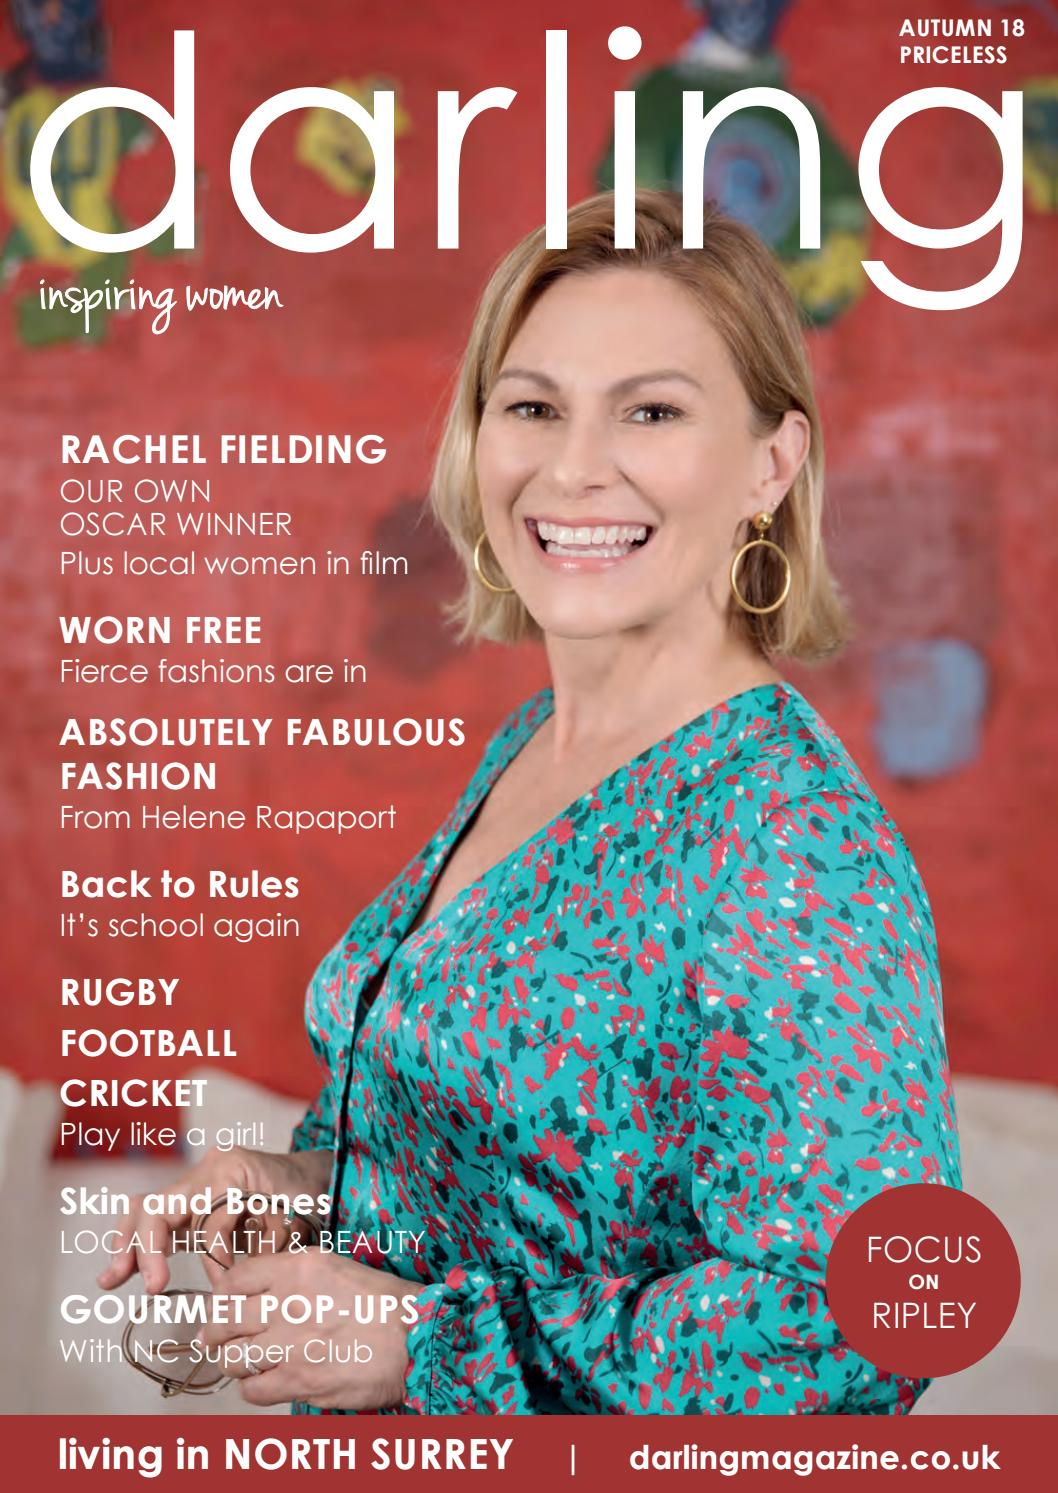 Darling Magazine North Surrey - Autumn 2018 by darling magazine - issuu